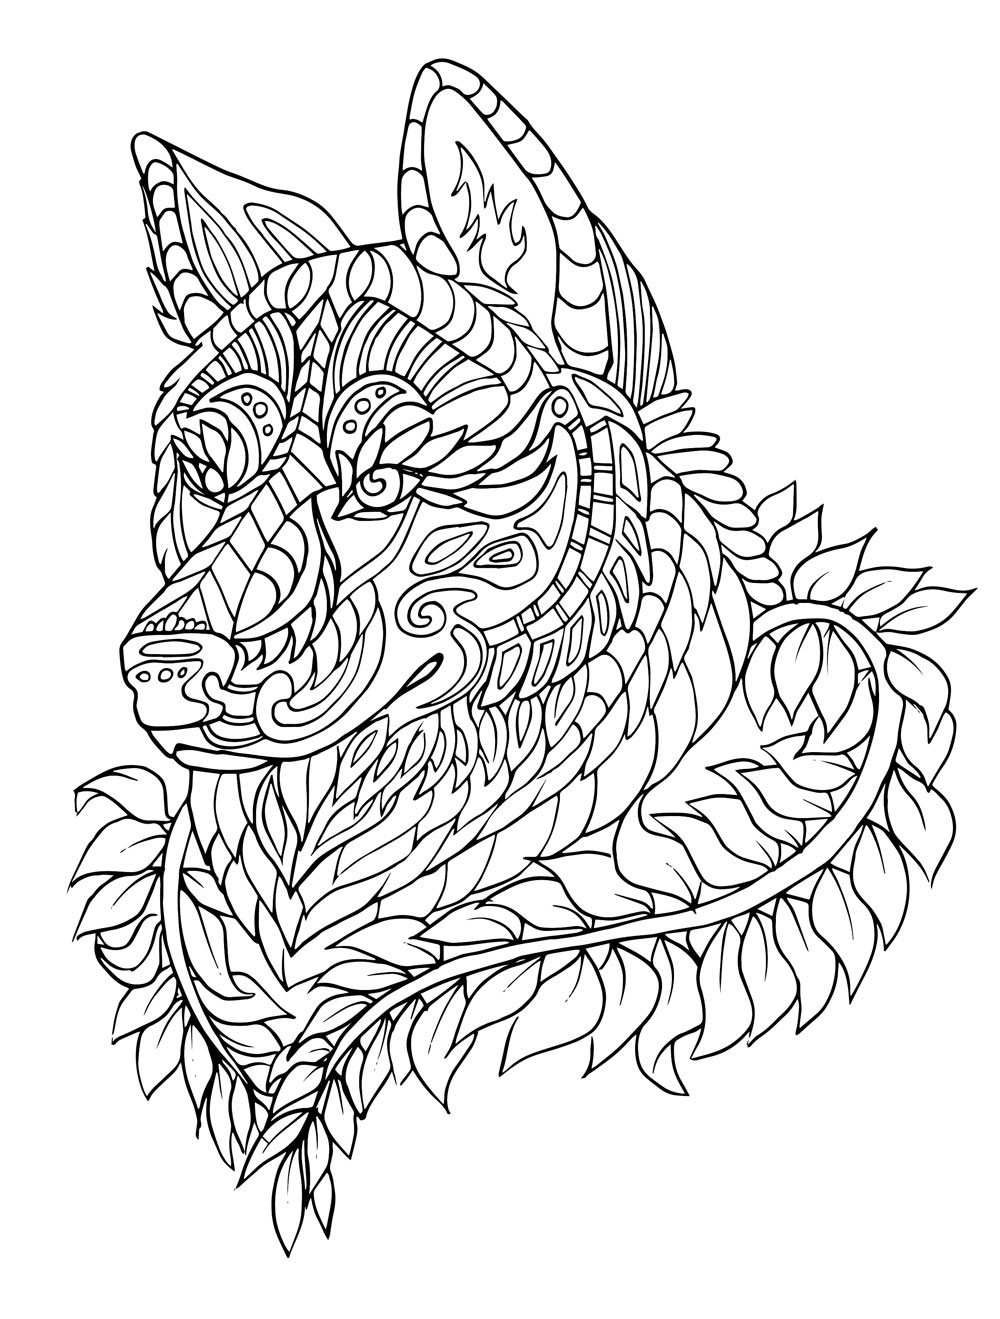 wolf coloring pages for adults - wolf mandala coloring pages for adults sketch templates